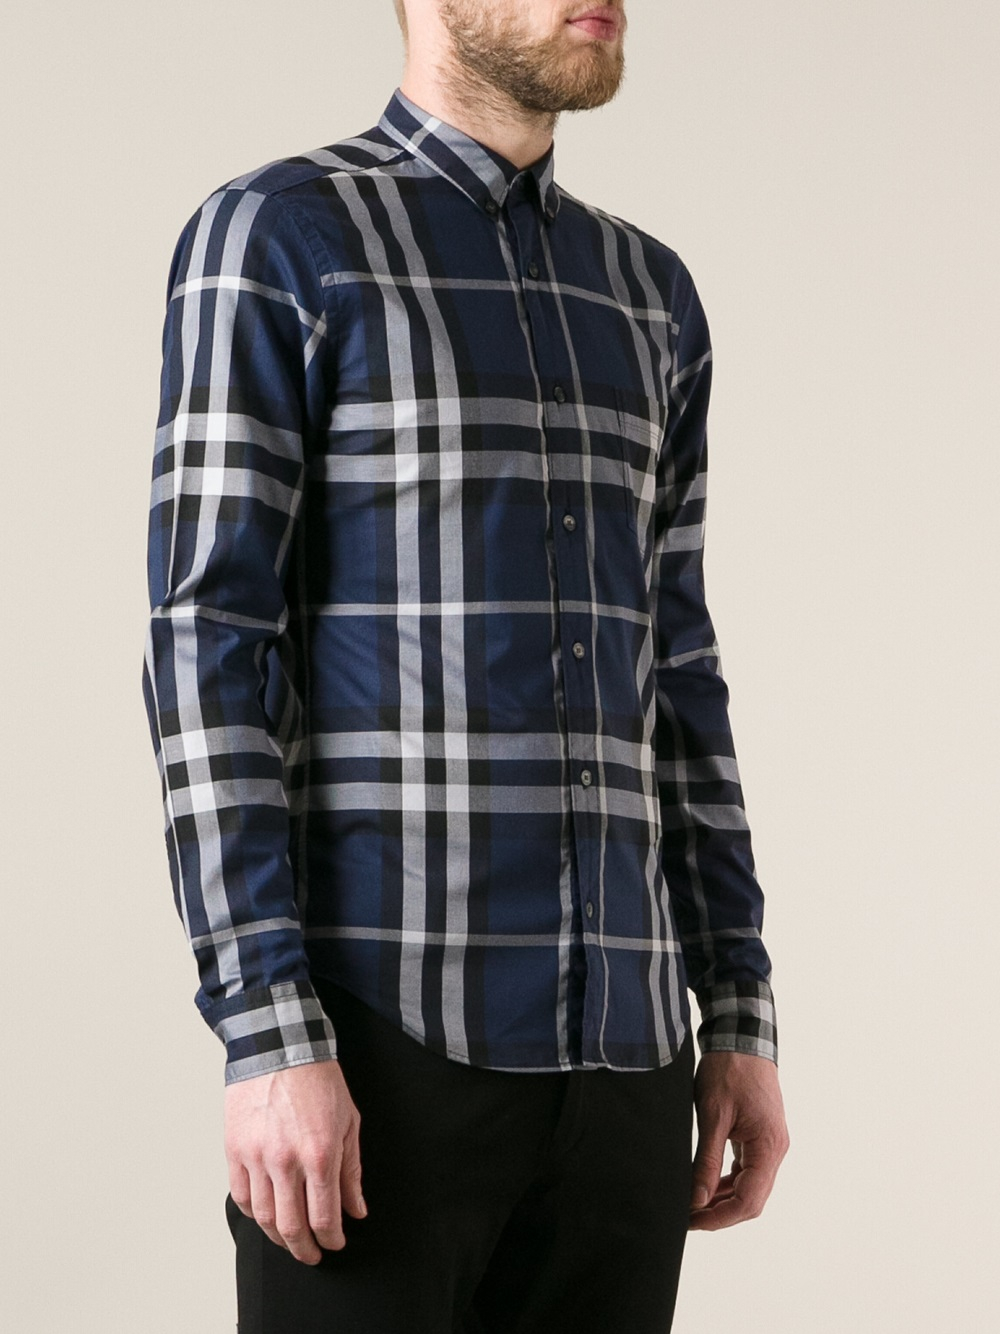 Lyst burberry brit long sleeve woven check shirt in blue for Burberry brit checked shirt